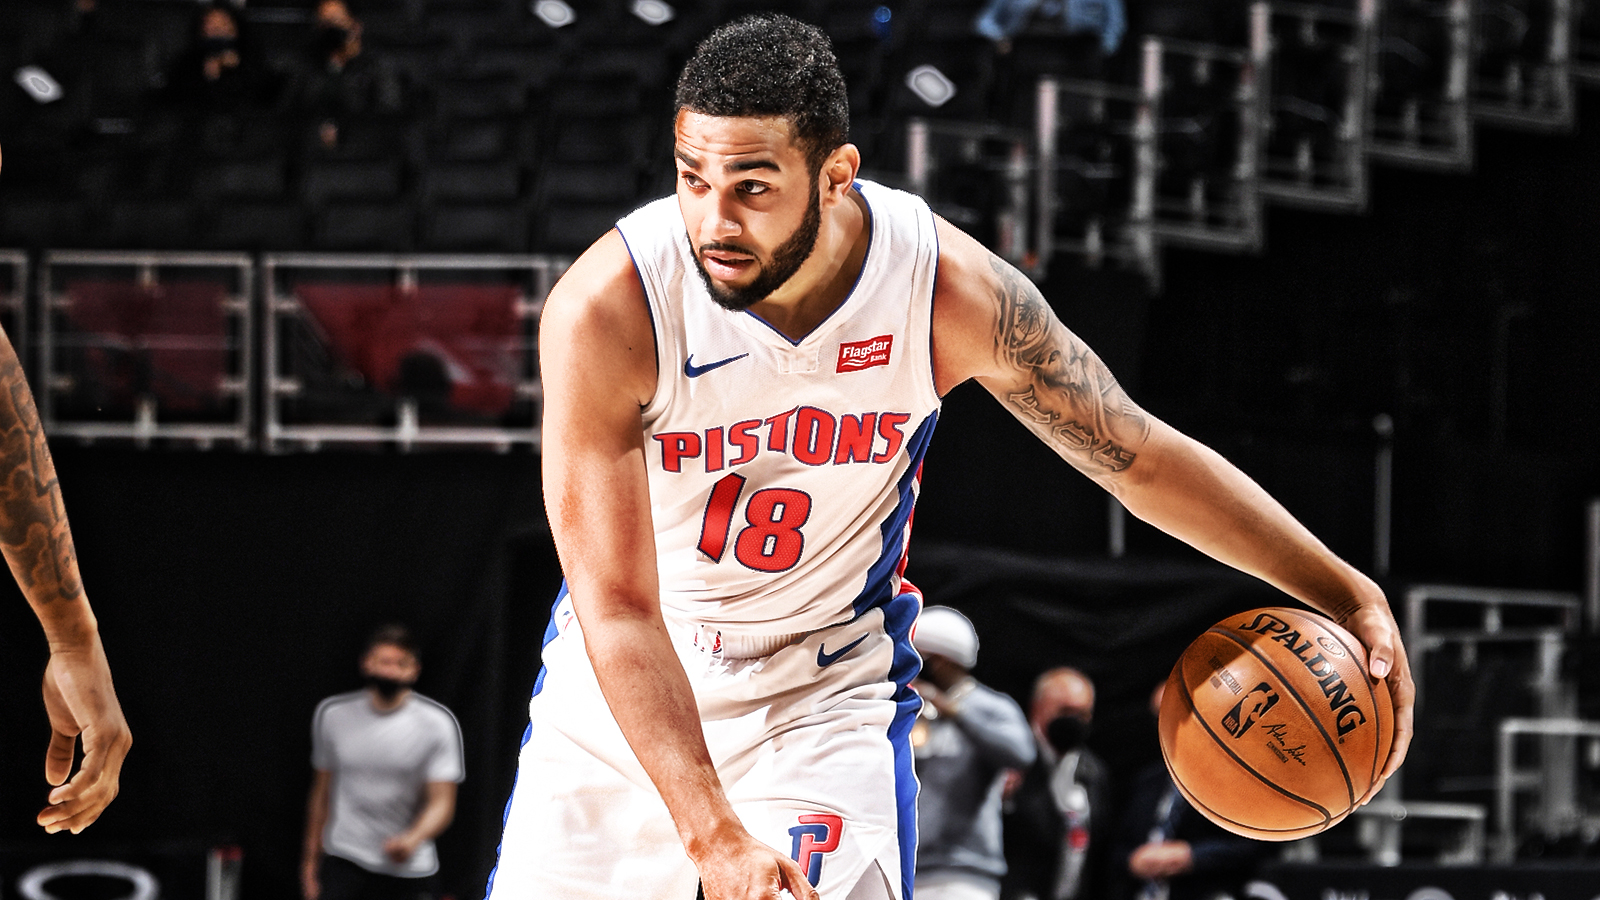 Pistons Playback, presented by Flagstar: Pistons vs Grizzlies